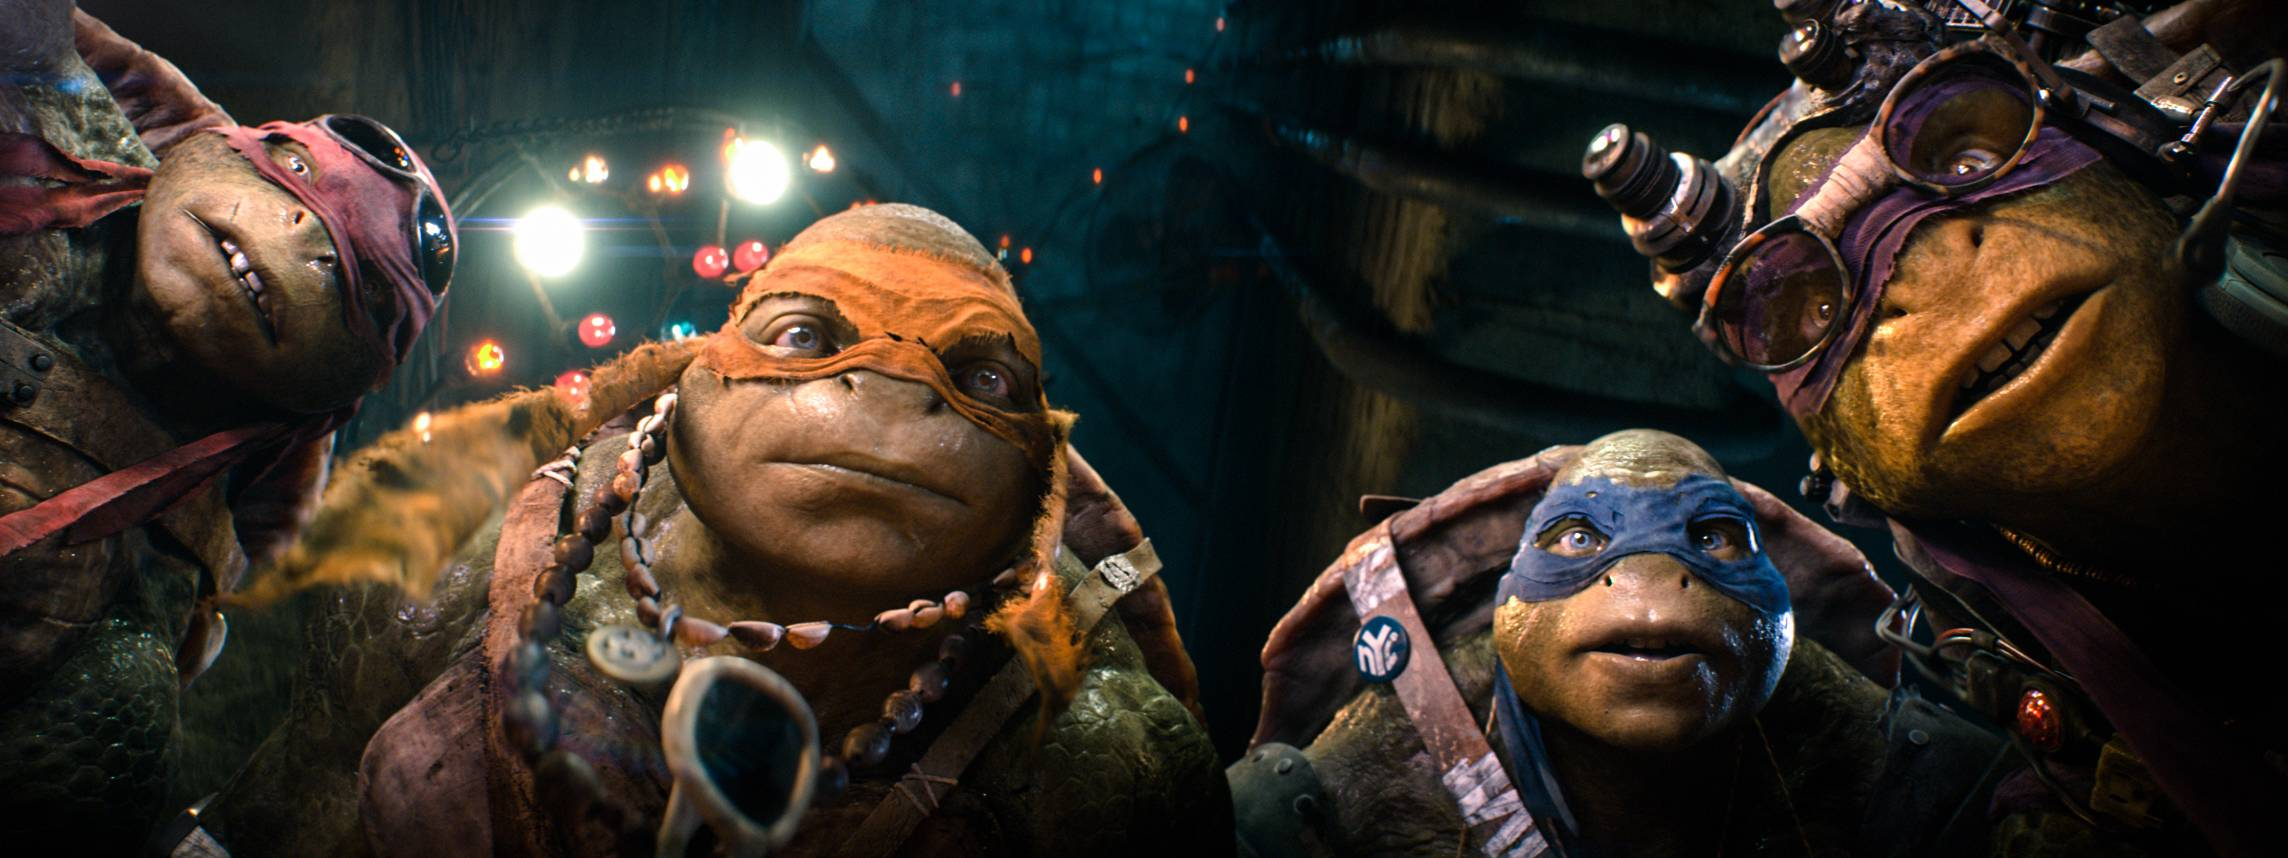 "Fharacters, from left, Raphael, Michelangelo, Leonardo, and Donatello in a scene from ""Teenage Mutant Ninja Turtles,"" which brought in $65 million in its first weekend of release."